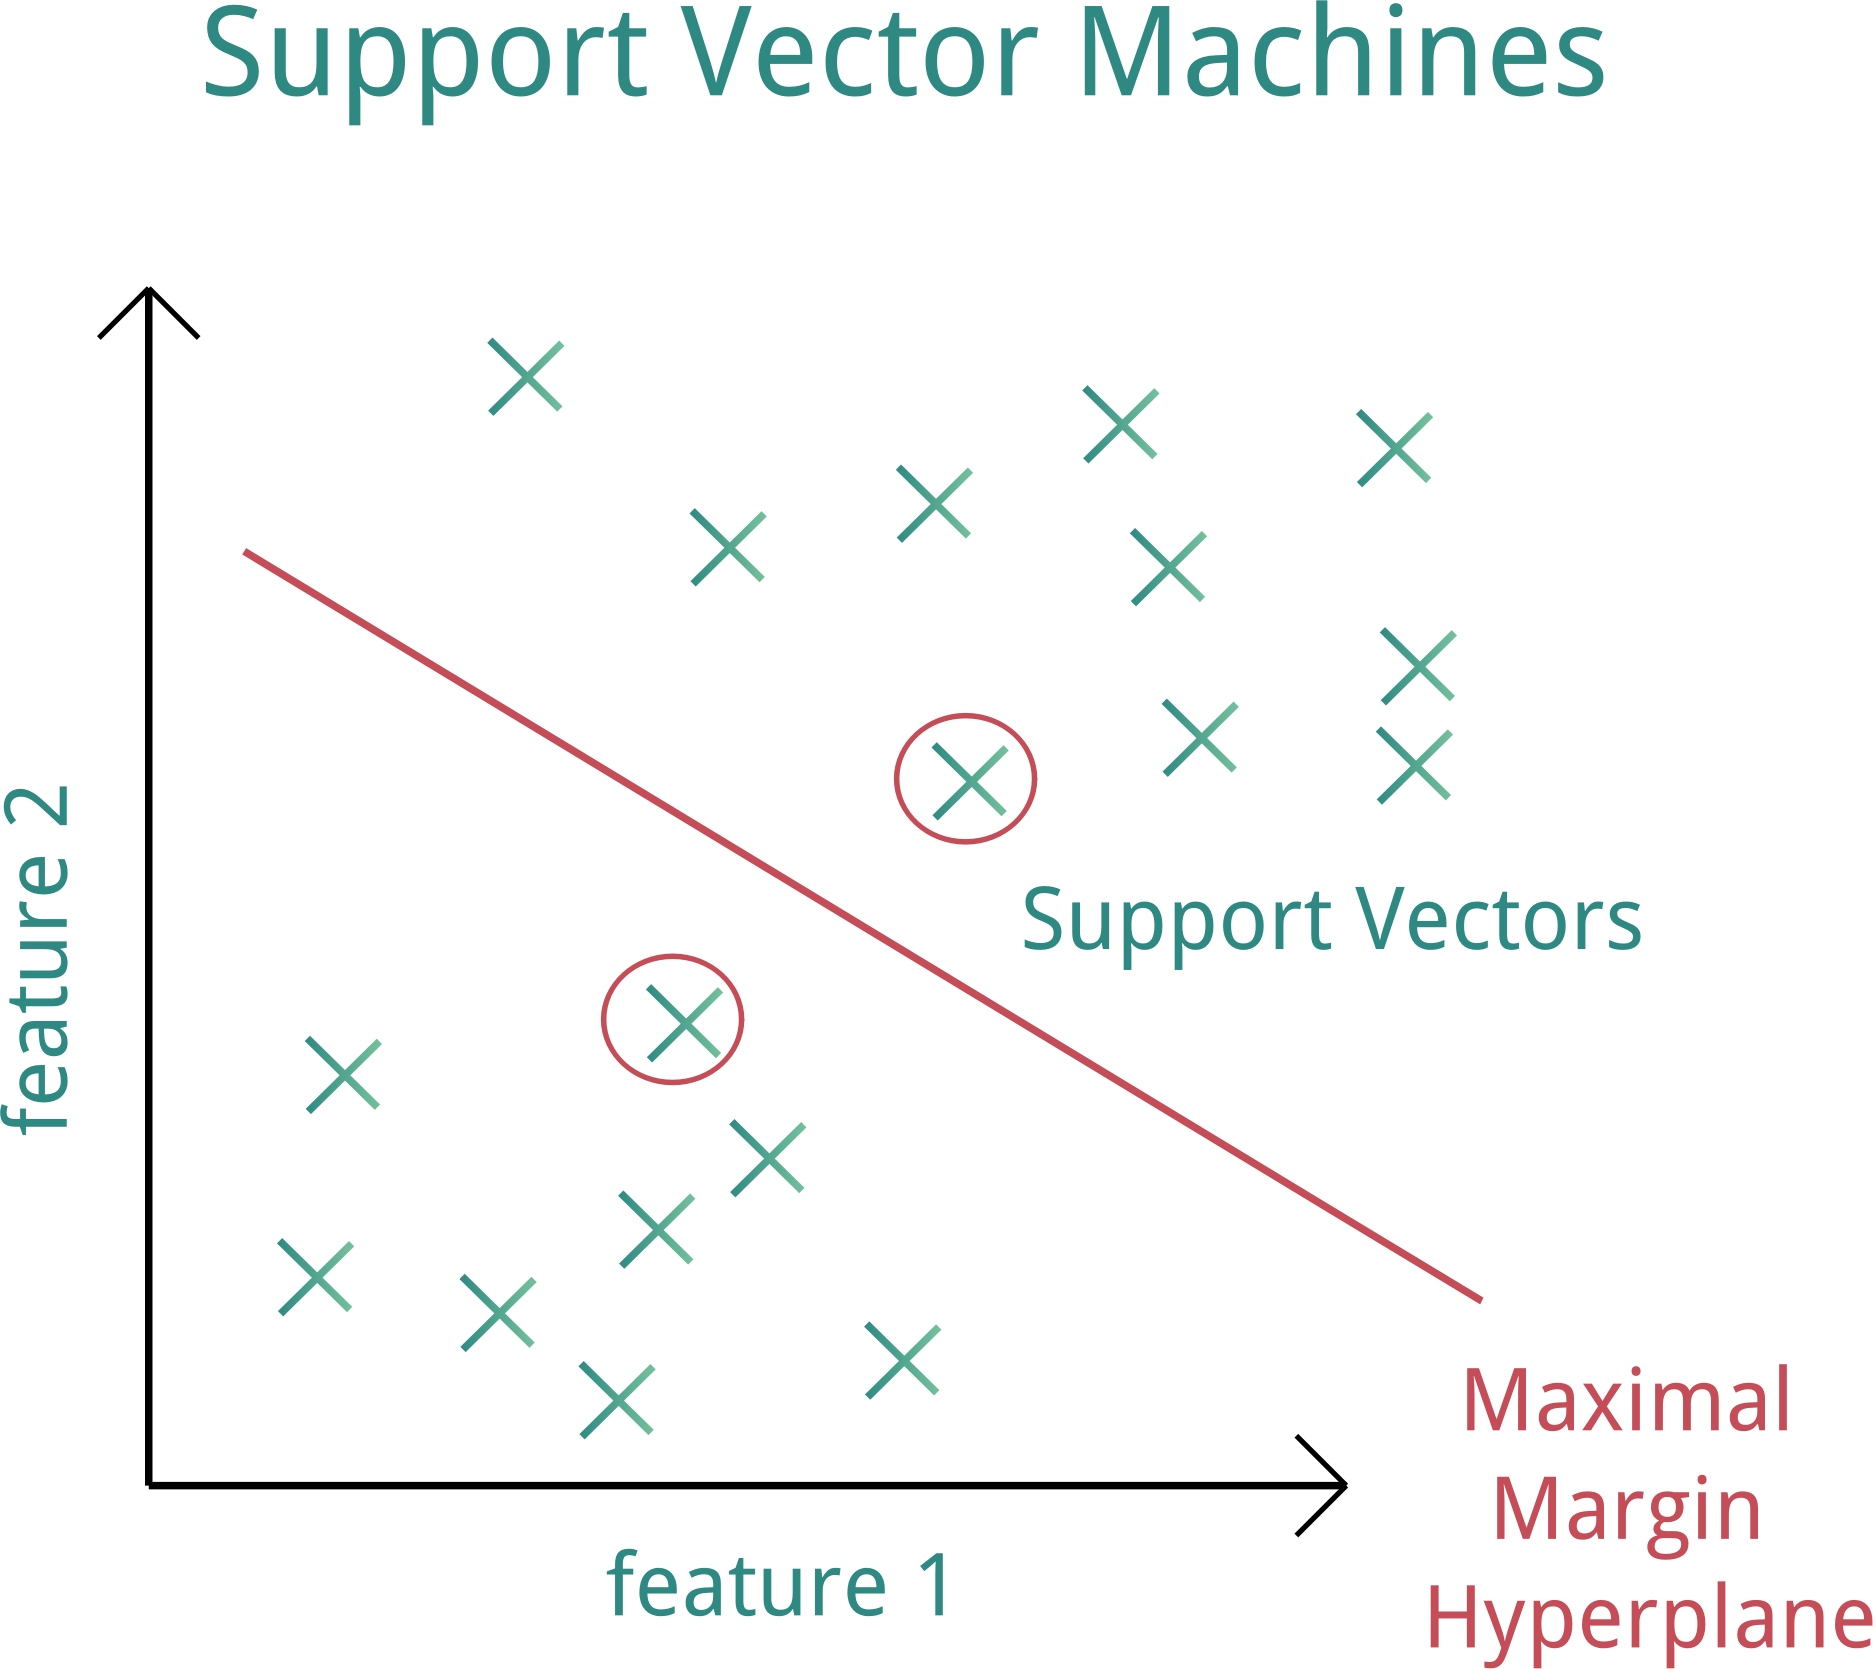 SVM (Support Vector Machines) by Suzana_K